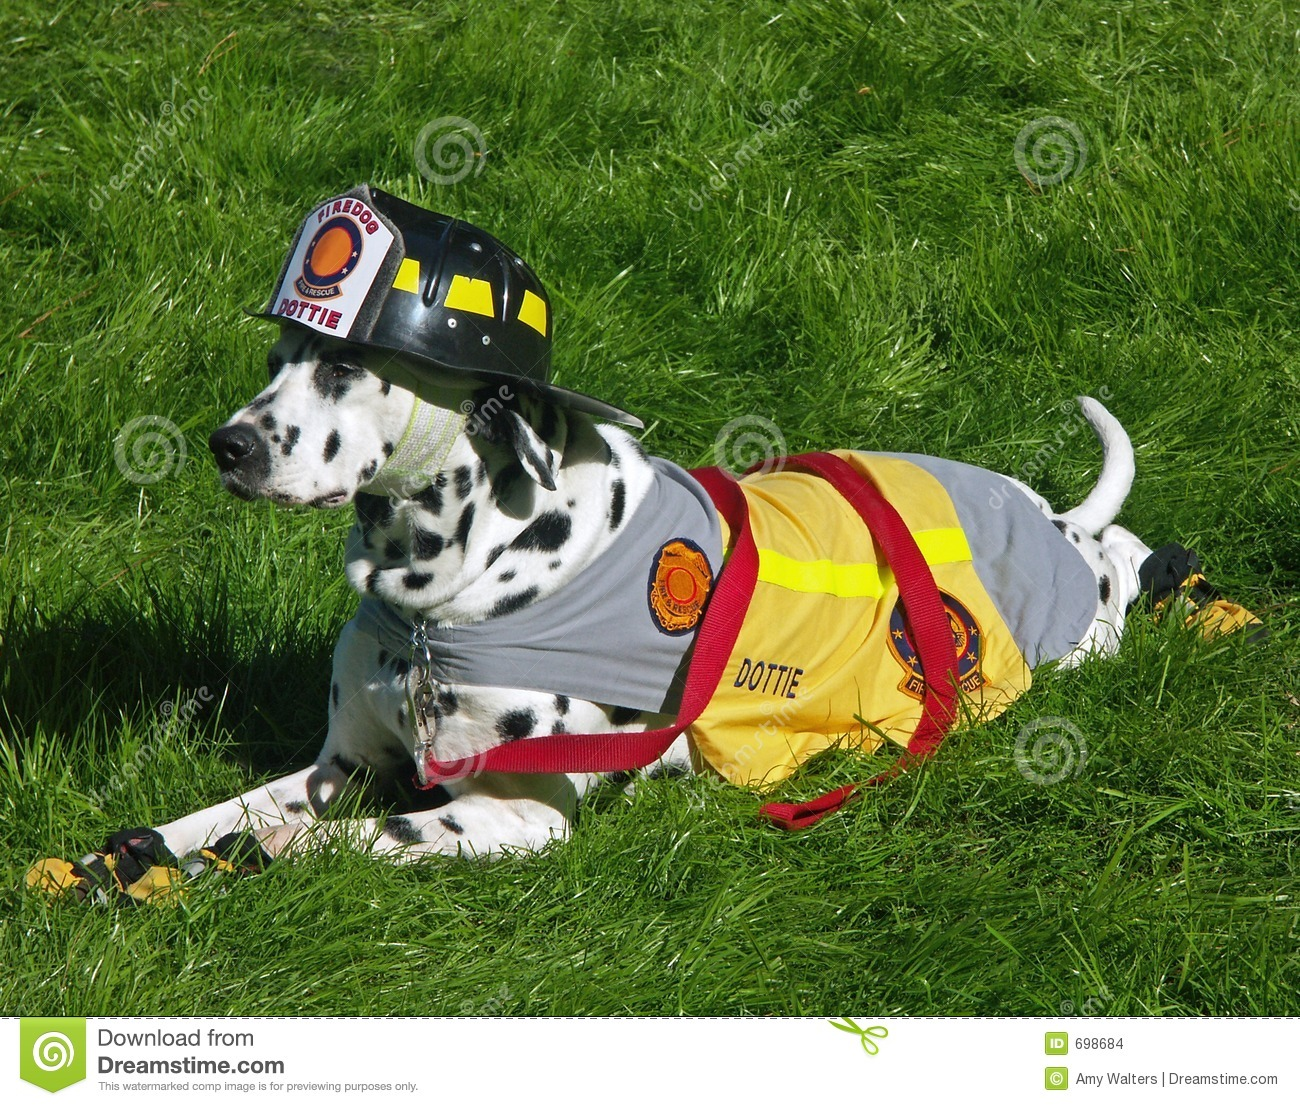 Fire Department Dalmation Mascot